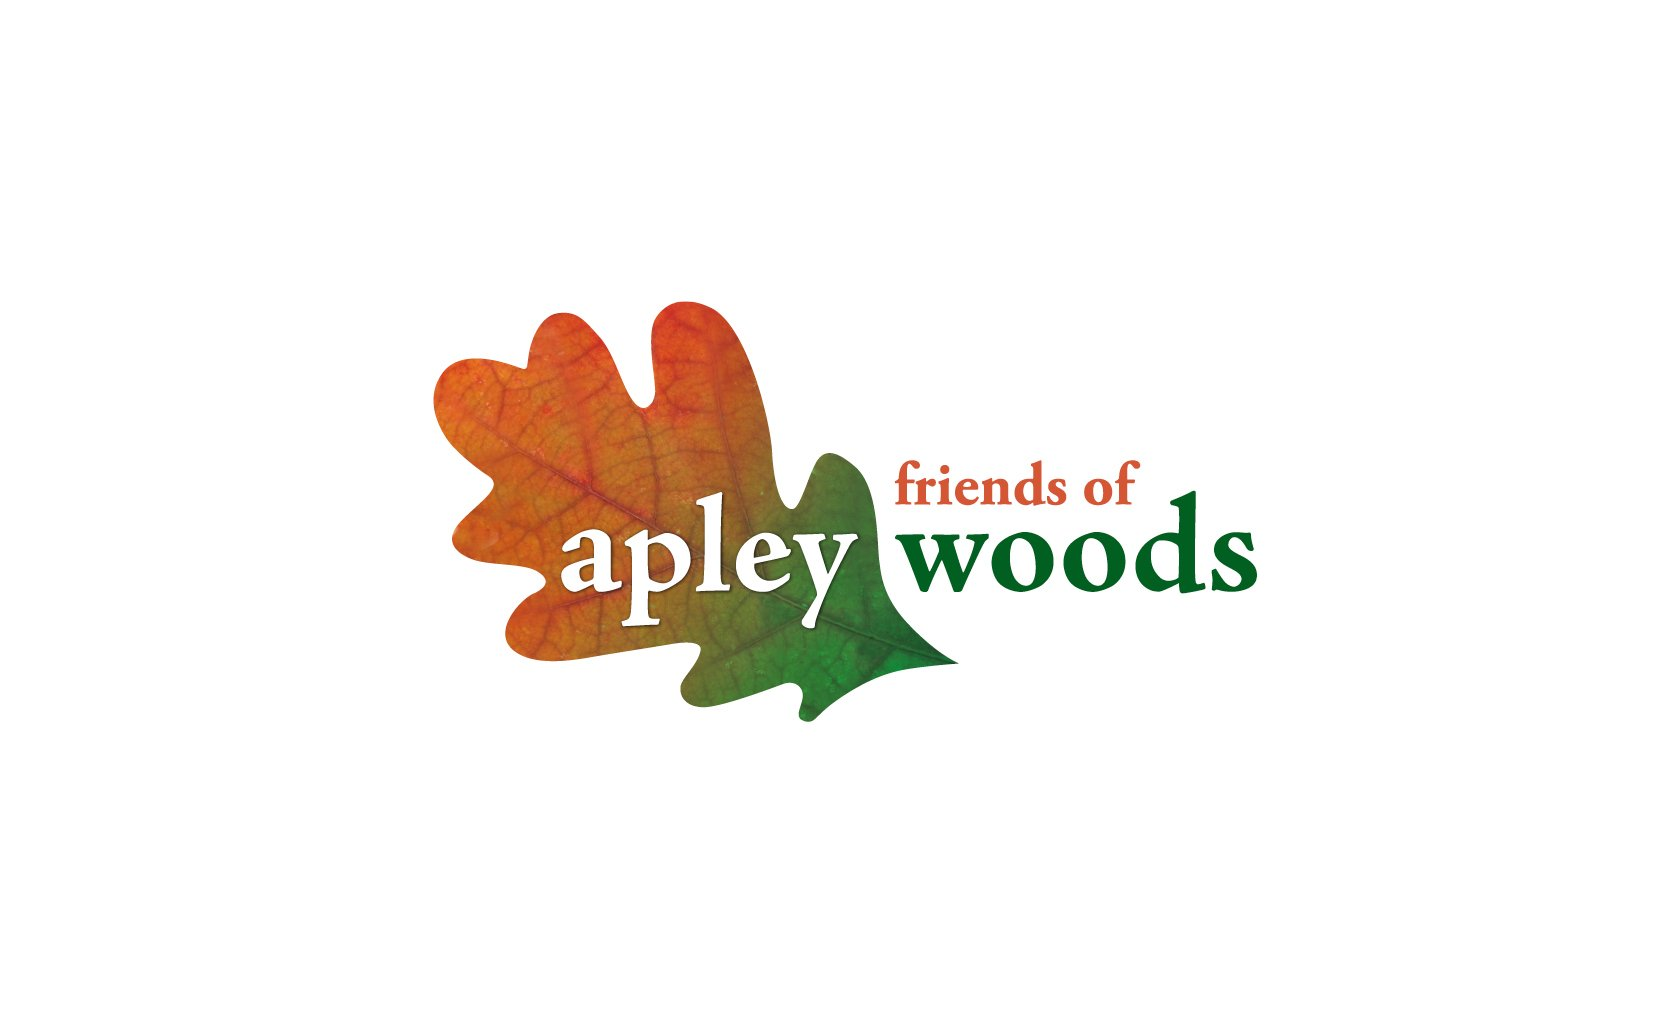 Apley Woods